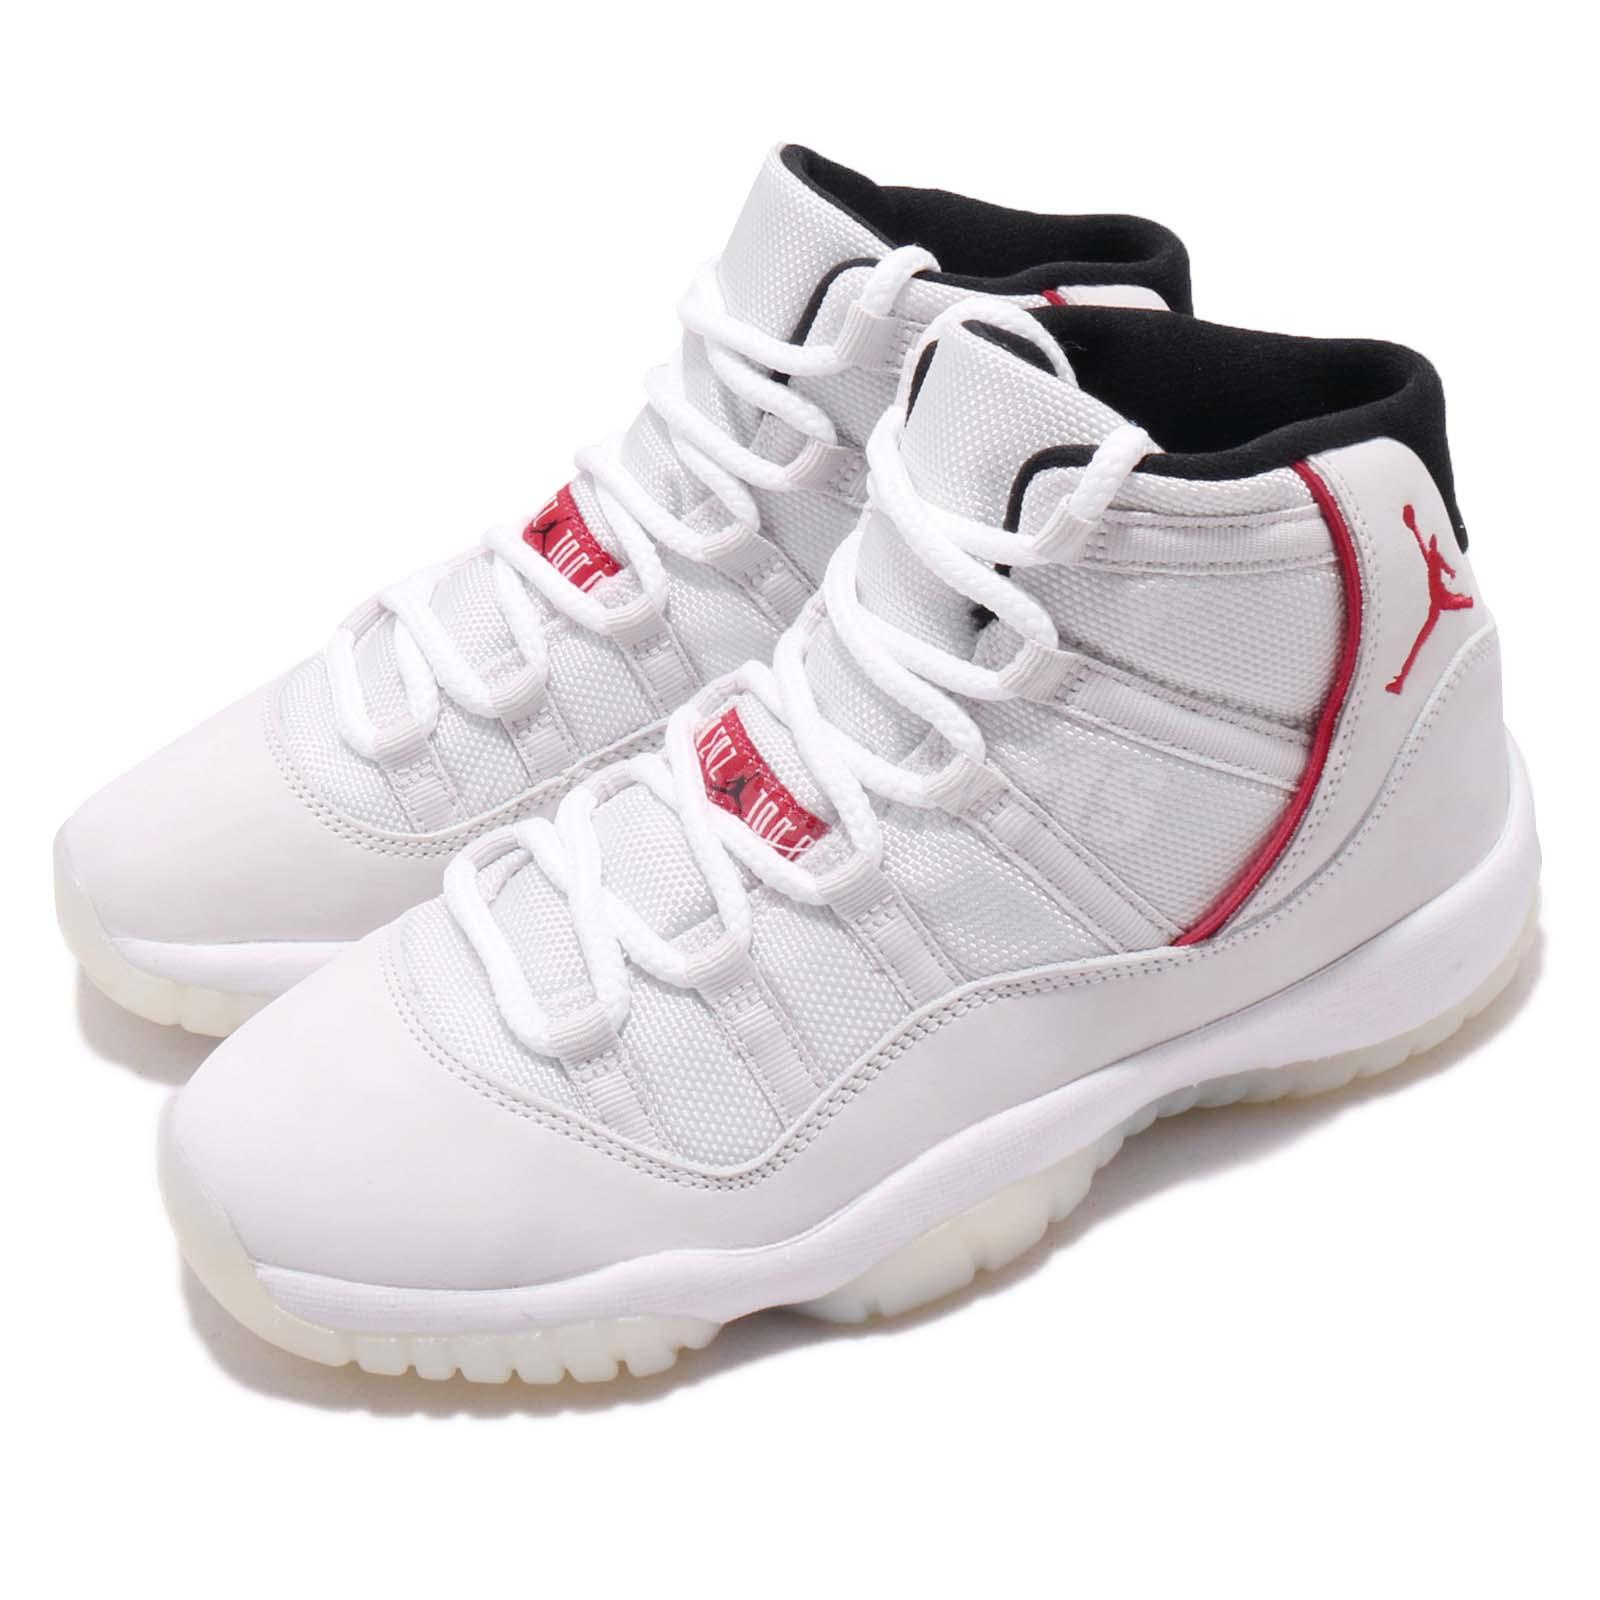 258c1eb367ff92 Details about Nike Air Jordan 11 Retro BG GS XI Platinum Tint Womens Youth  Shoes 378038-016